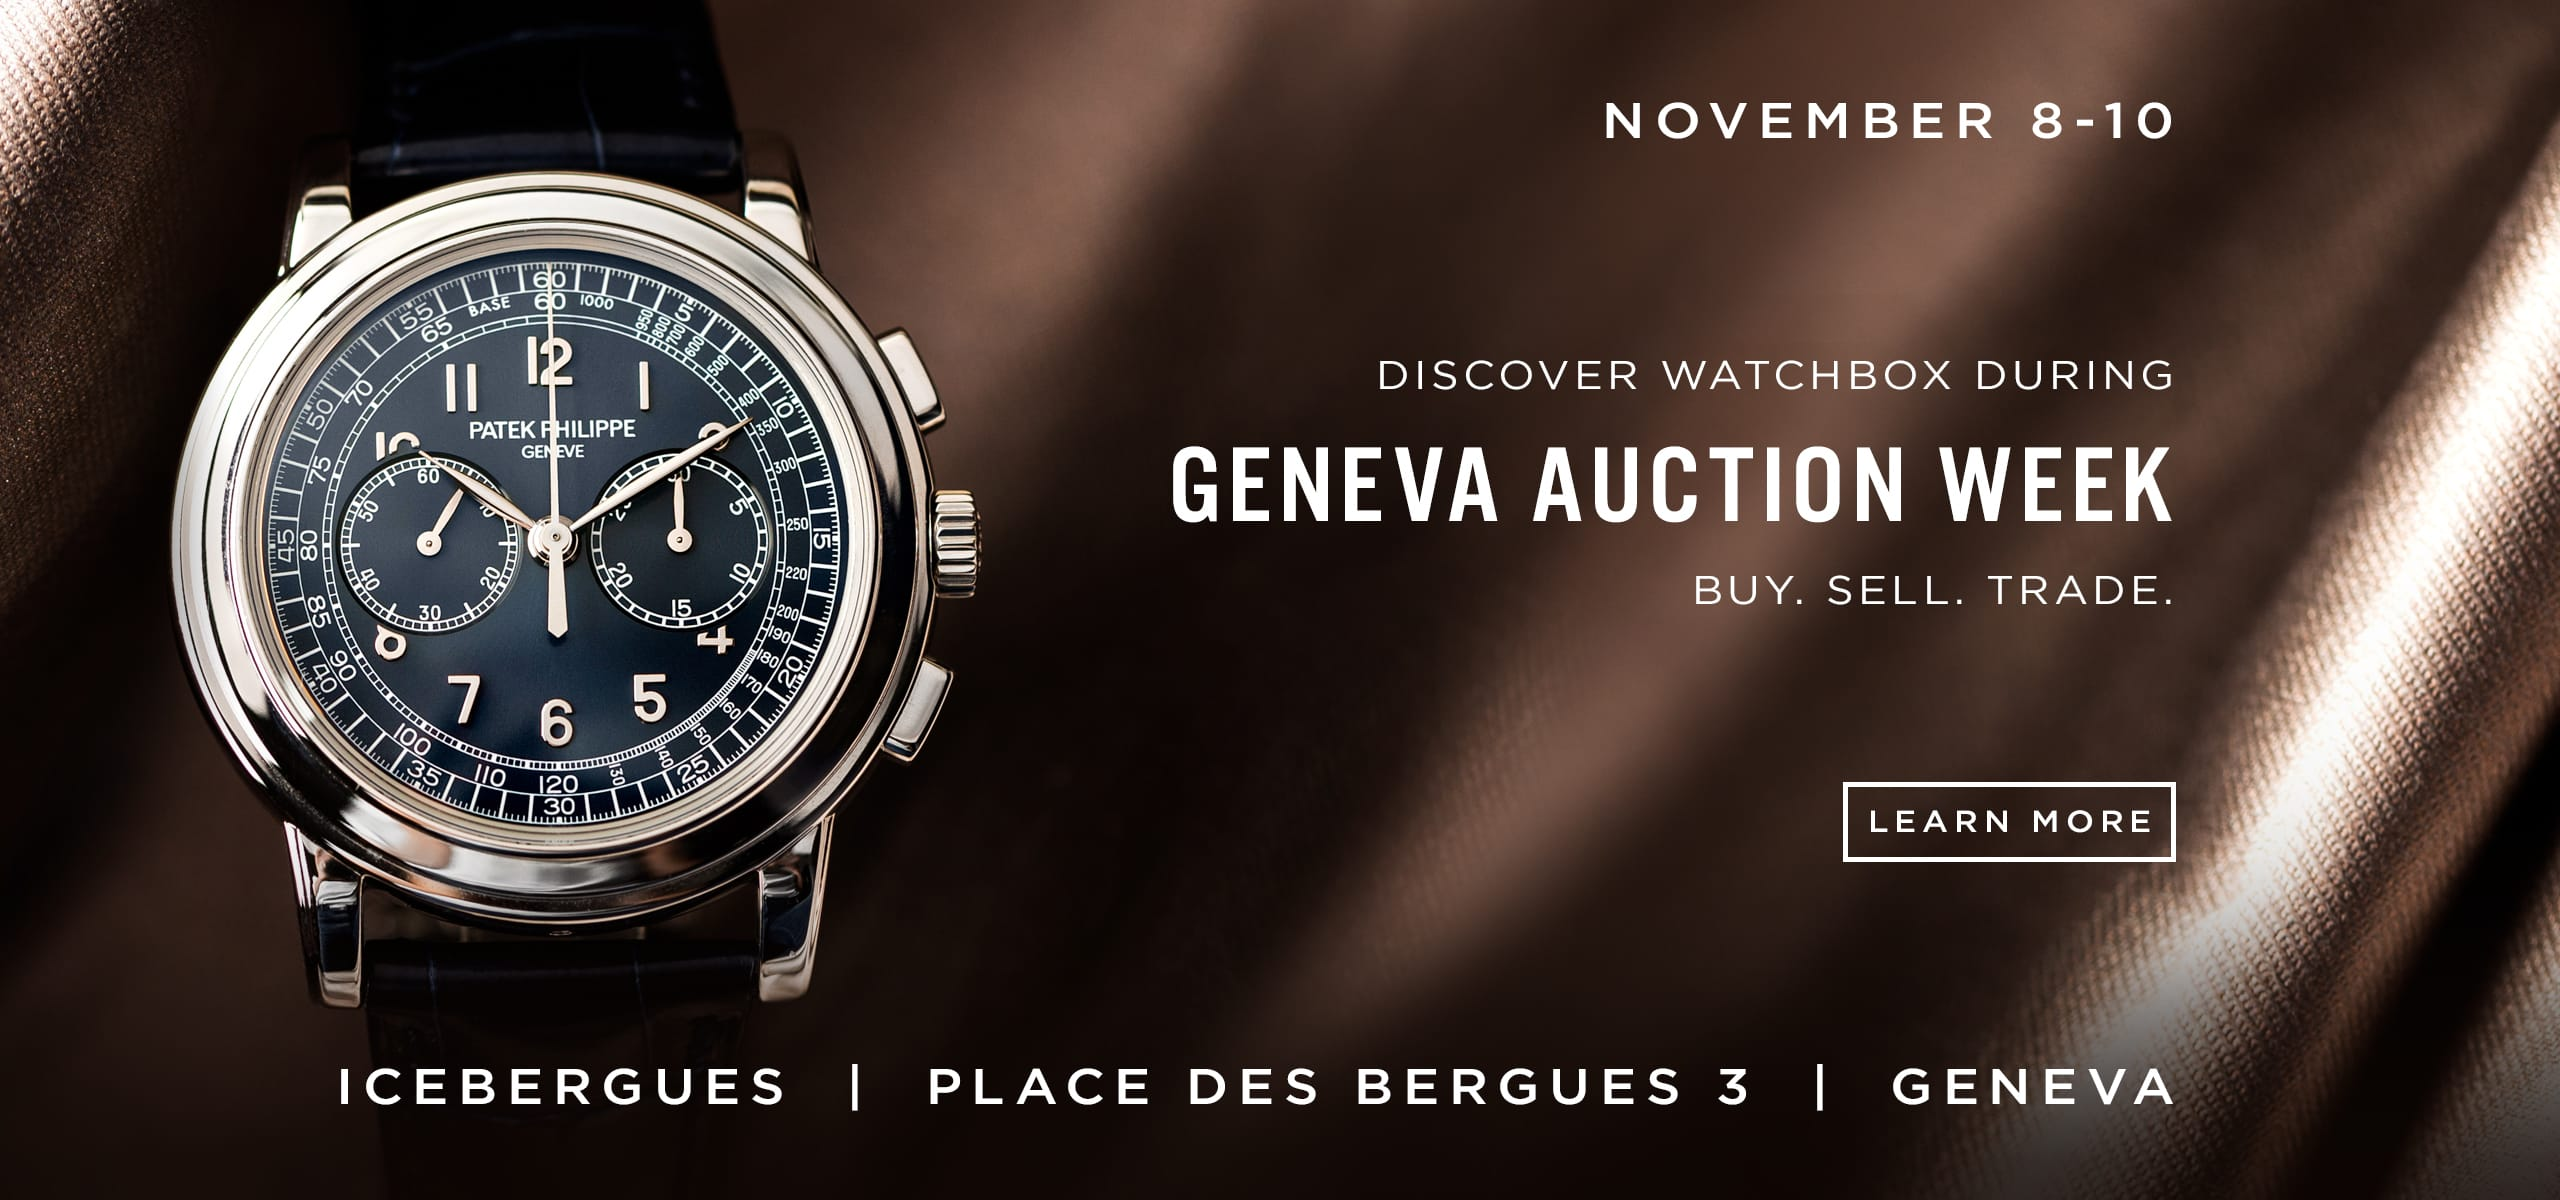 WatchBox at Geneva Auction Week